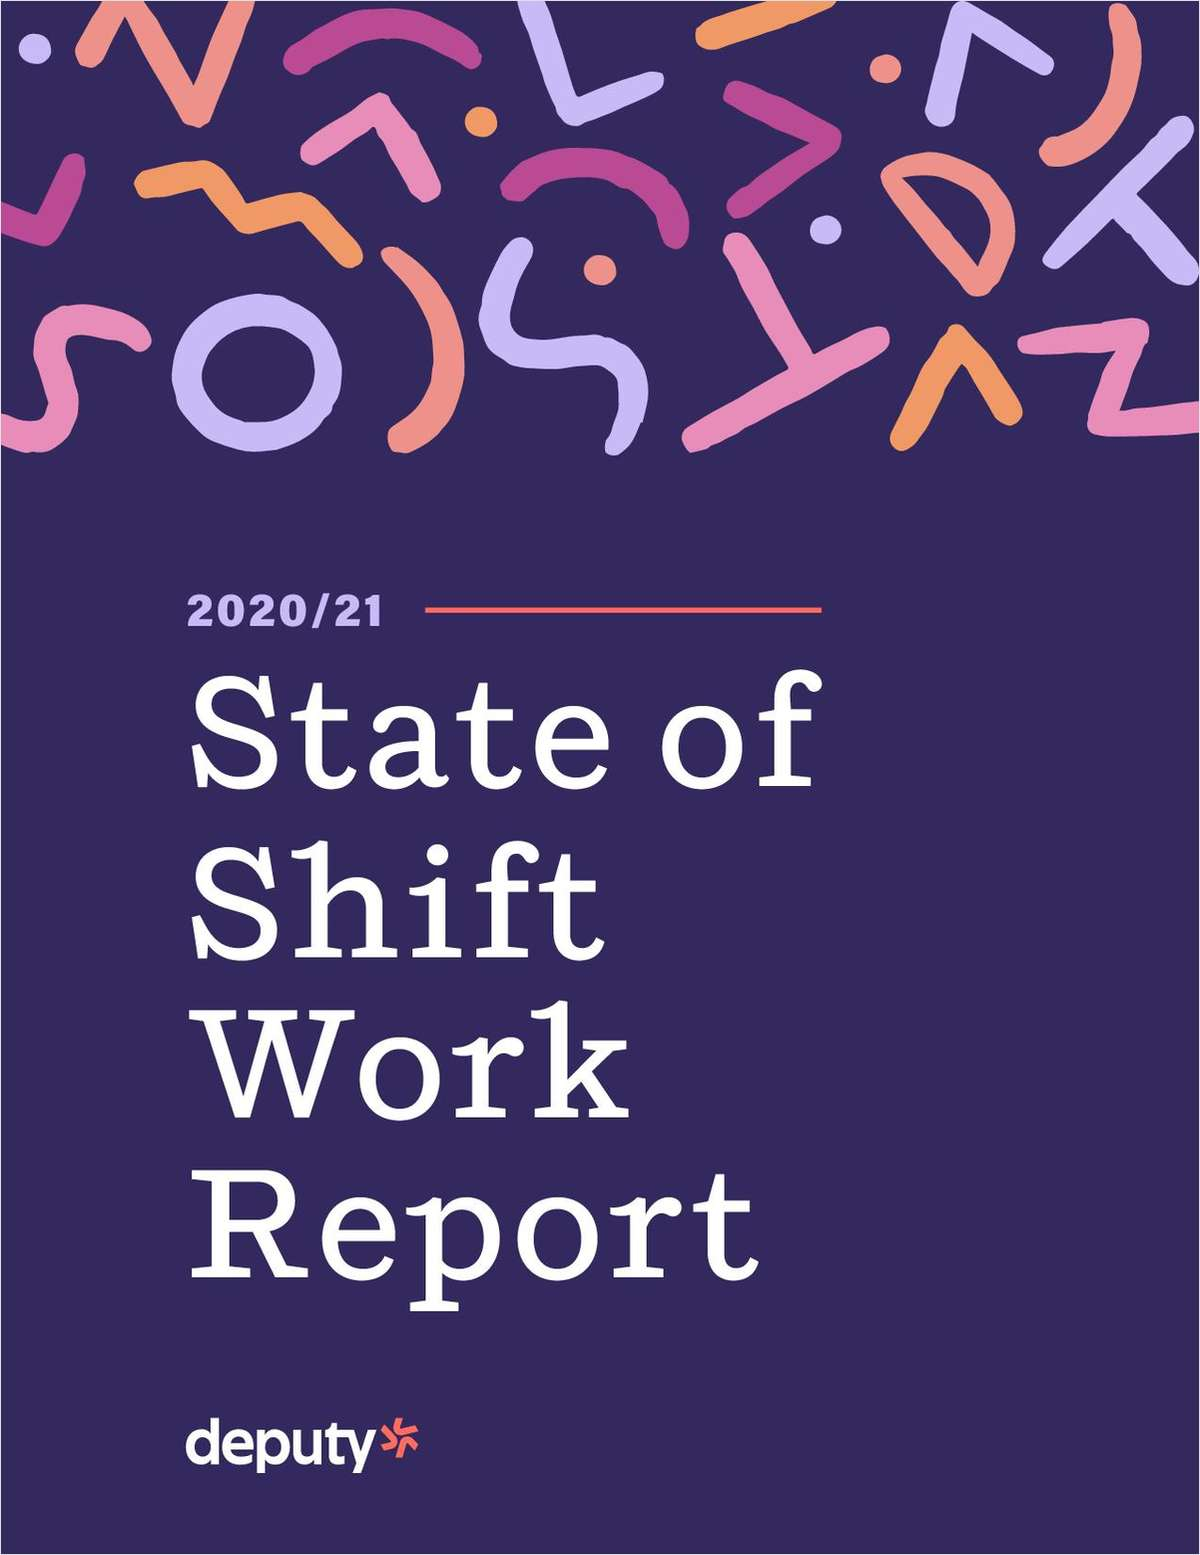 2020/21 State of Shift Work Report